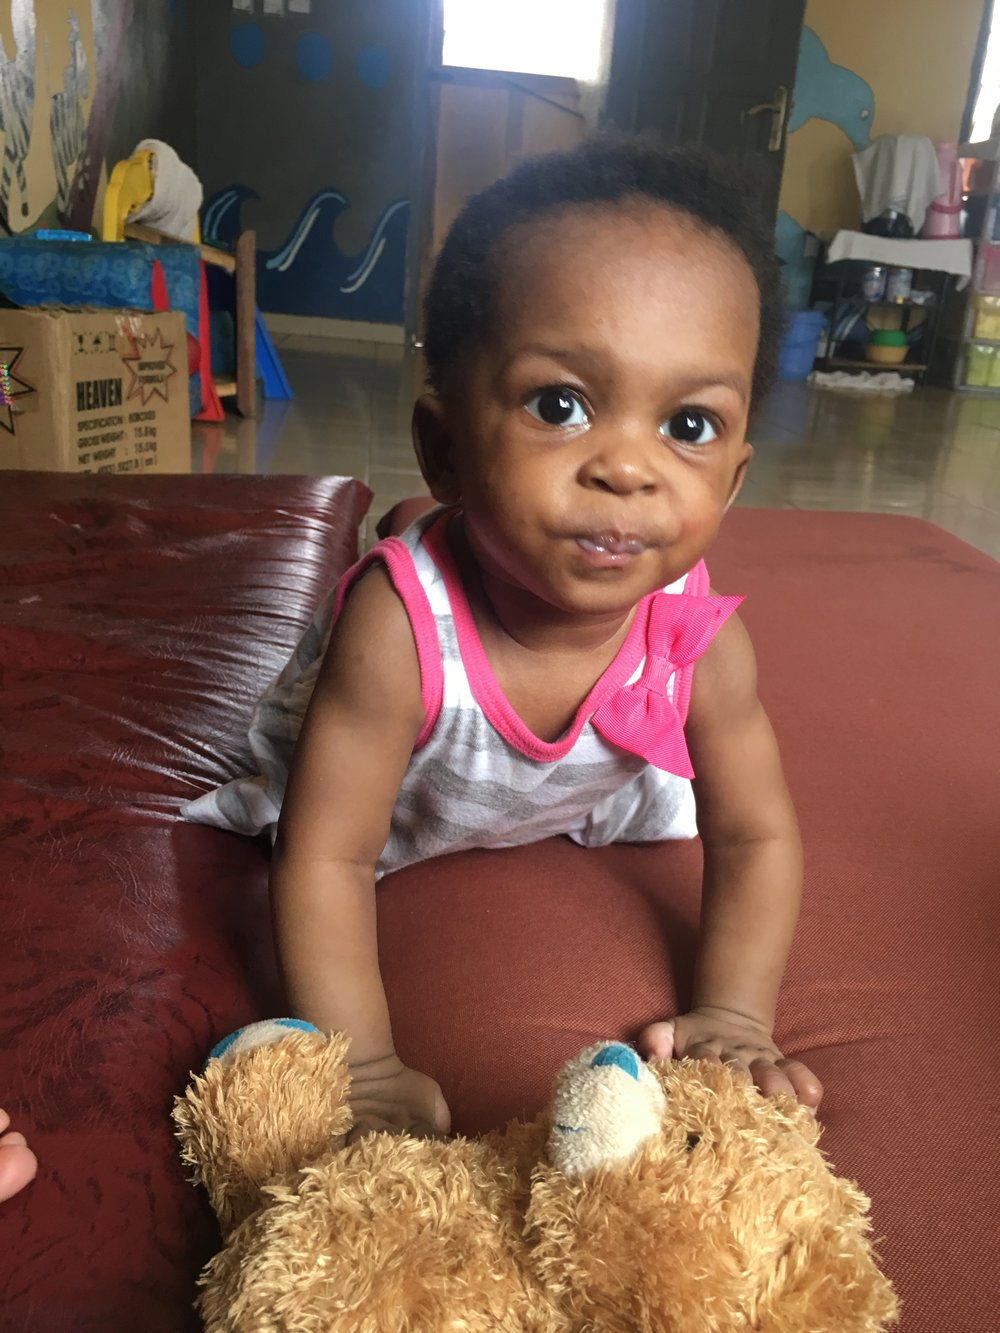 Nkansah - Nkansah my baby. The first baby I held at the orphanage. The first one I fell in love with. She is about 6 or 7 months old. She has these big curious eyes that almost look too big to be on a baby. I love them. She is my little busy body. When I first arrived there, she could not even crawl yet, but was crawling all over the place and even pulling herself up to stand by my third week. Eboni and I call her our twerking baby because she loves to rock back and forth on her hands and knees when she's happy. She also loves to climb on people. Literally has no regard for her little fingers poking you in the eye, slapping another baby in the face, digging her little foot into your chest.  I got a ring made that has her name engraved on it. I'm sure when she gets older, people there will tell her about me, as all the staff and house mothers refer to me as